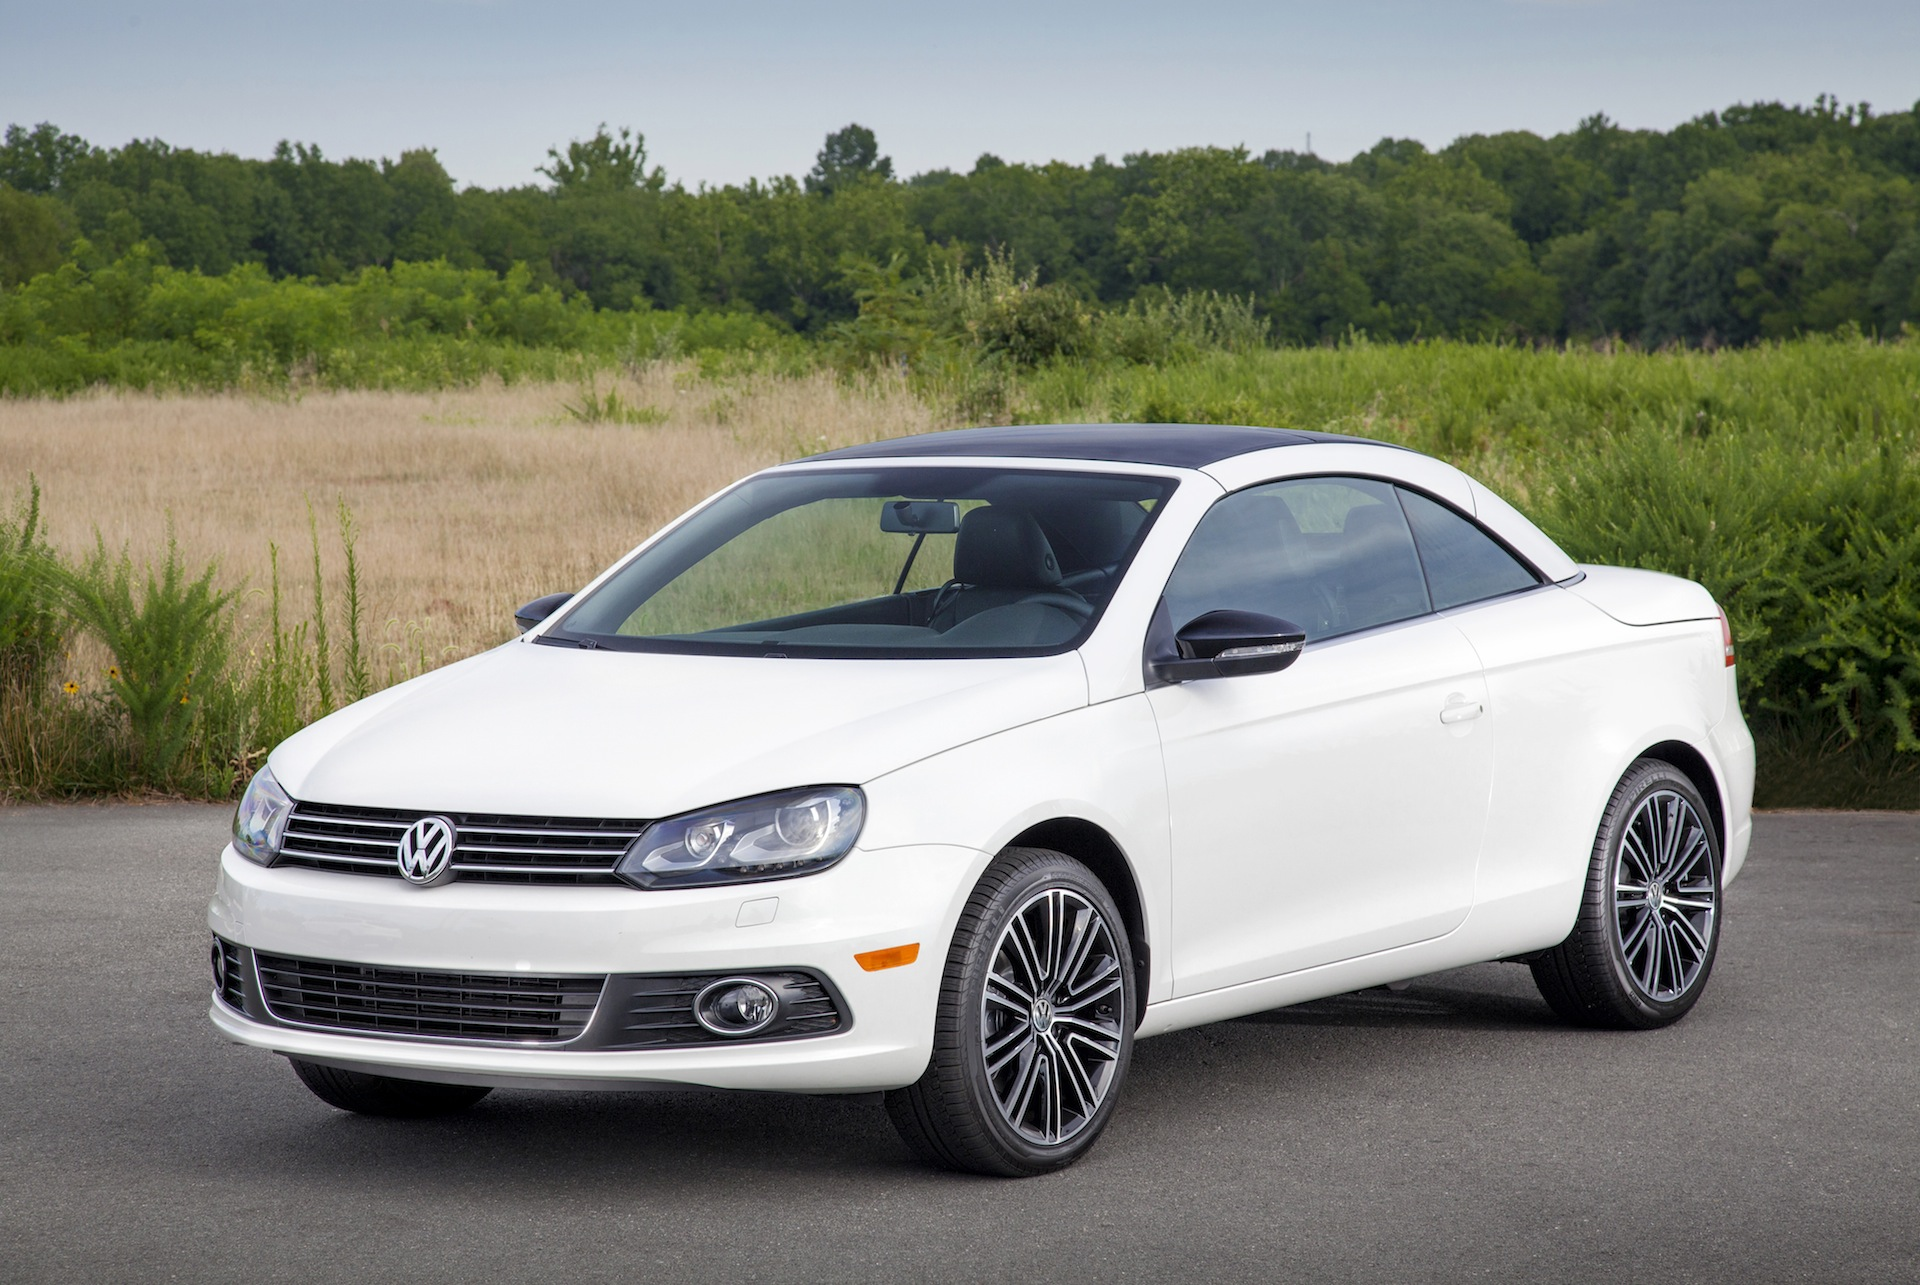 2014 volkswagen eos vw review ratings specs prices and photos the car connection. Black Bedroom Furniture Sets. Home Design Ideas